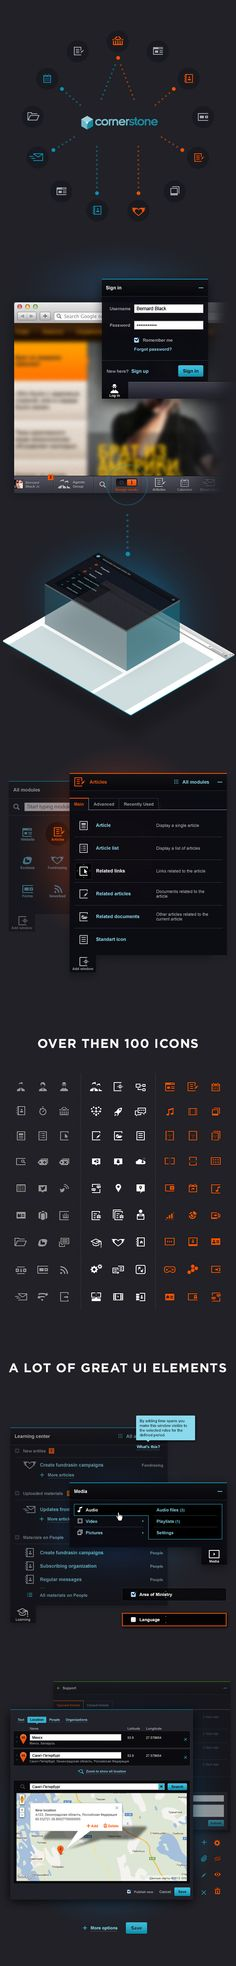 CornerStone CMS by AGENTE , via Behance